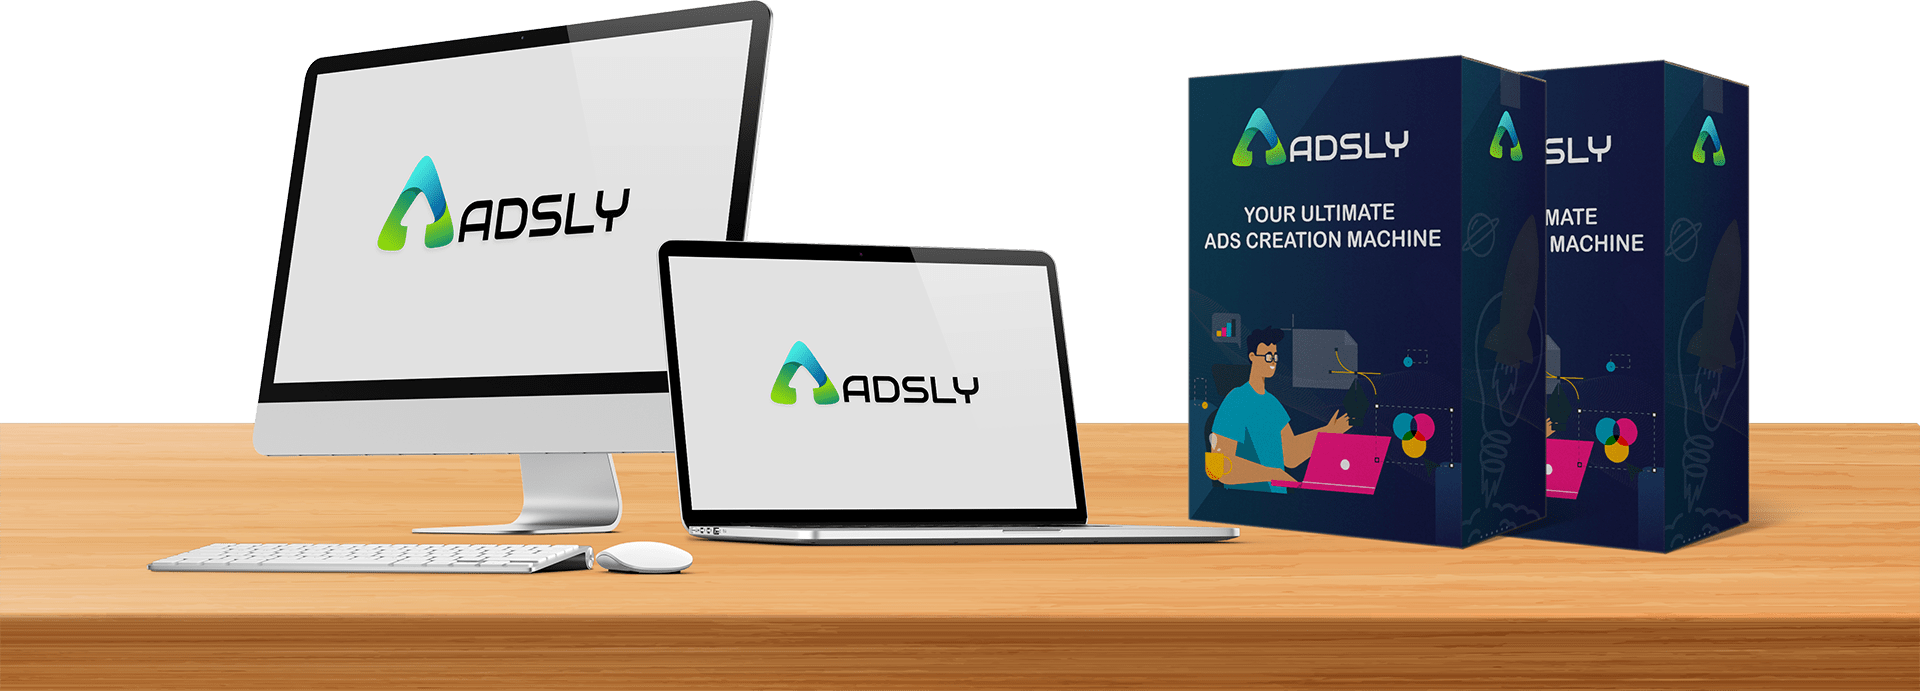 Adsly Review : World's #1 All Social Media & Google Ads Creation Suite? 1